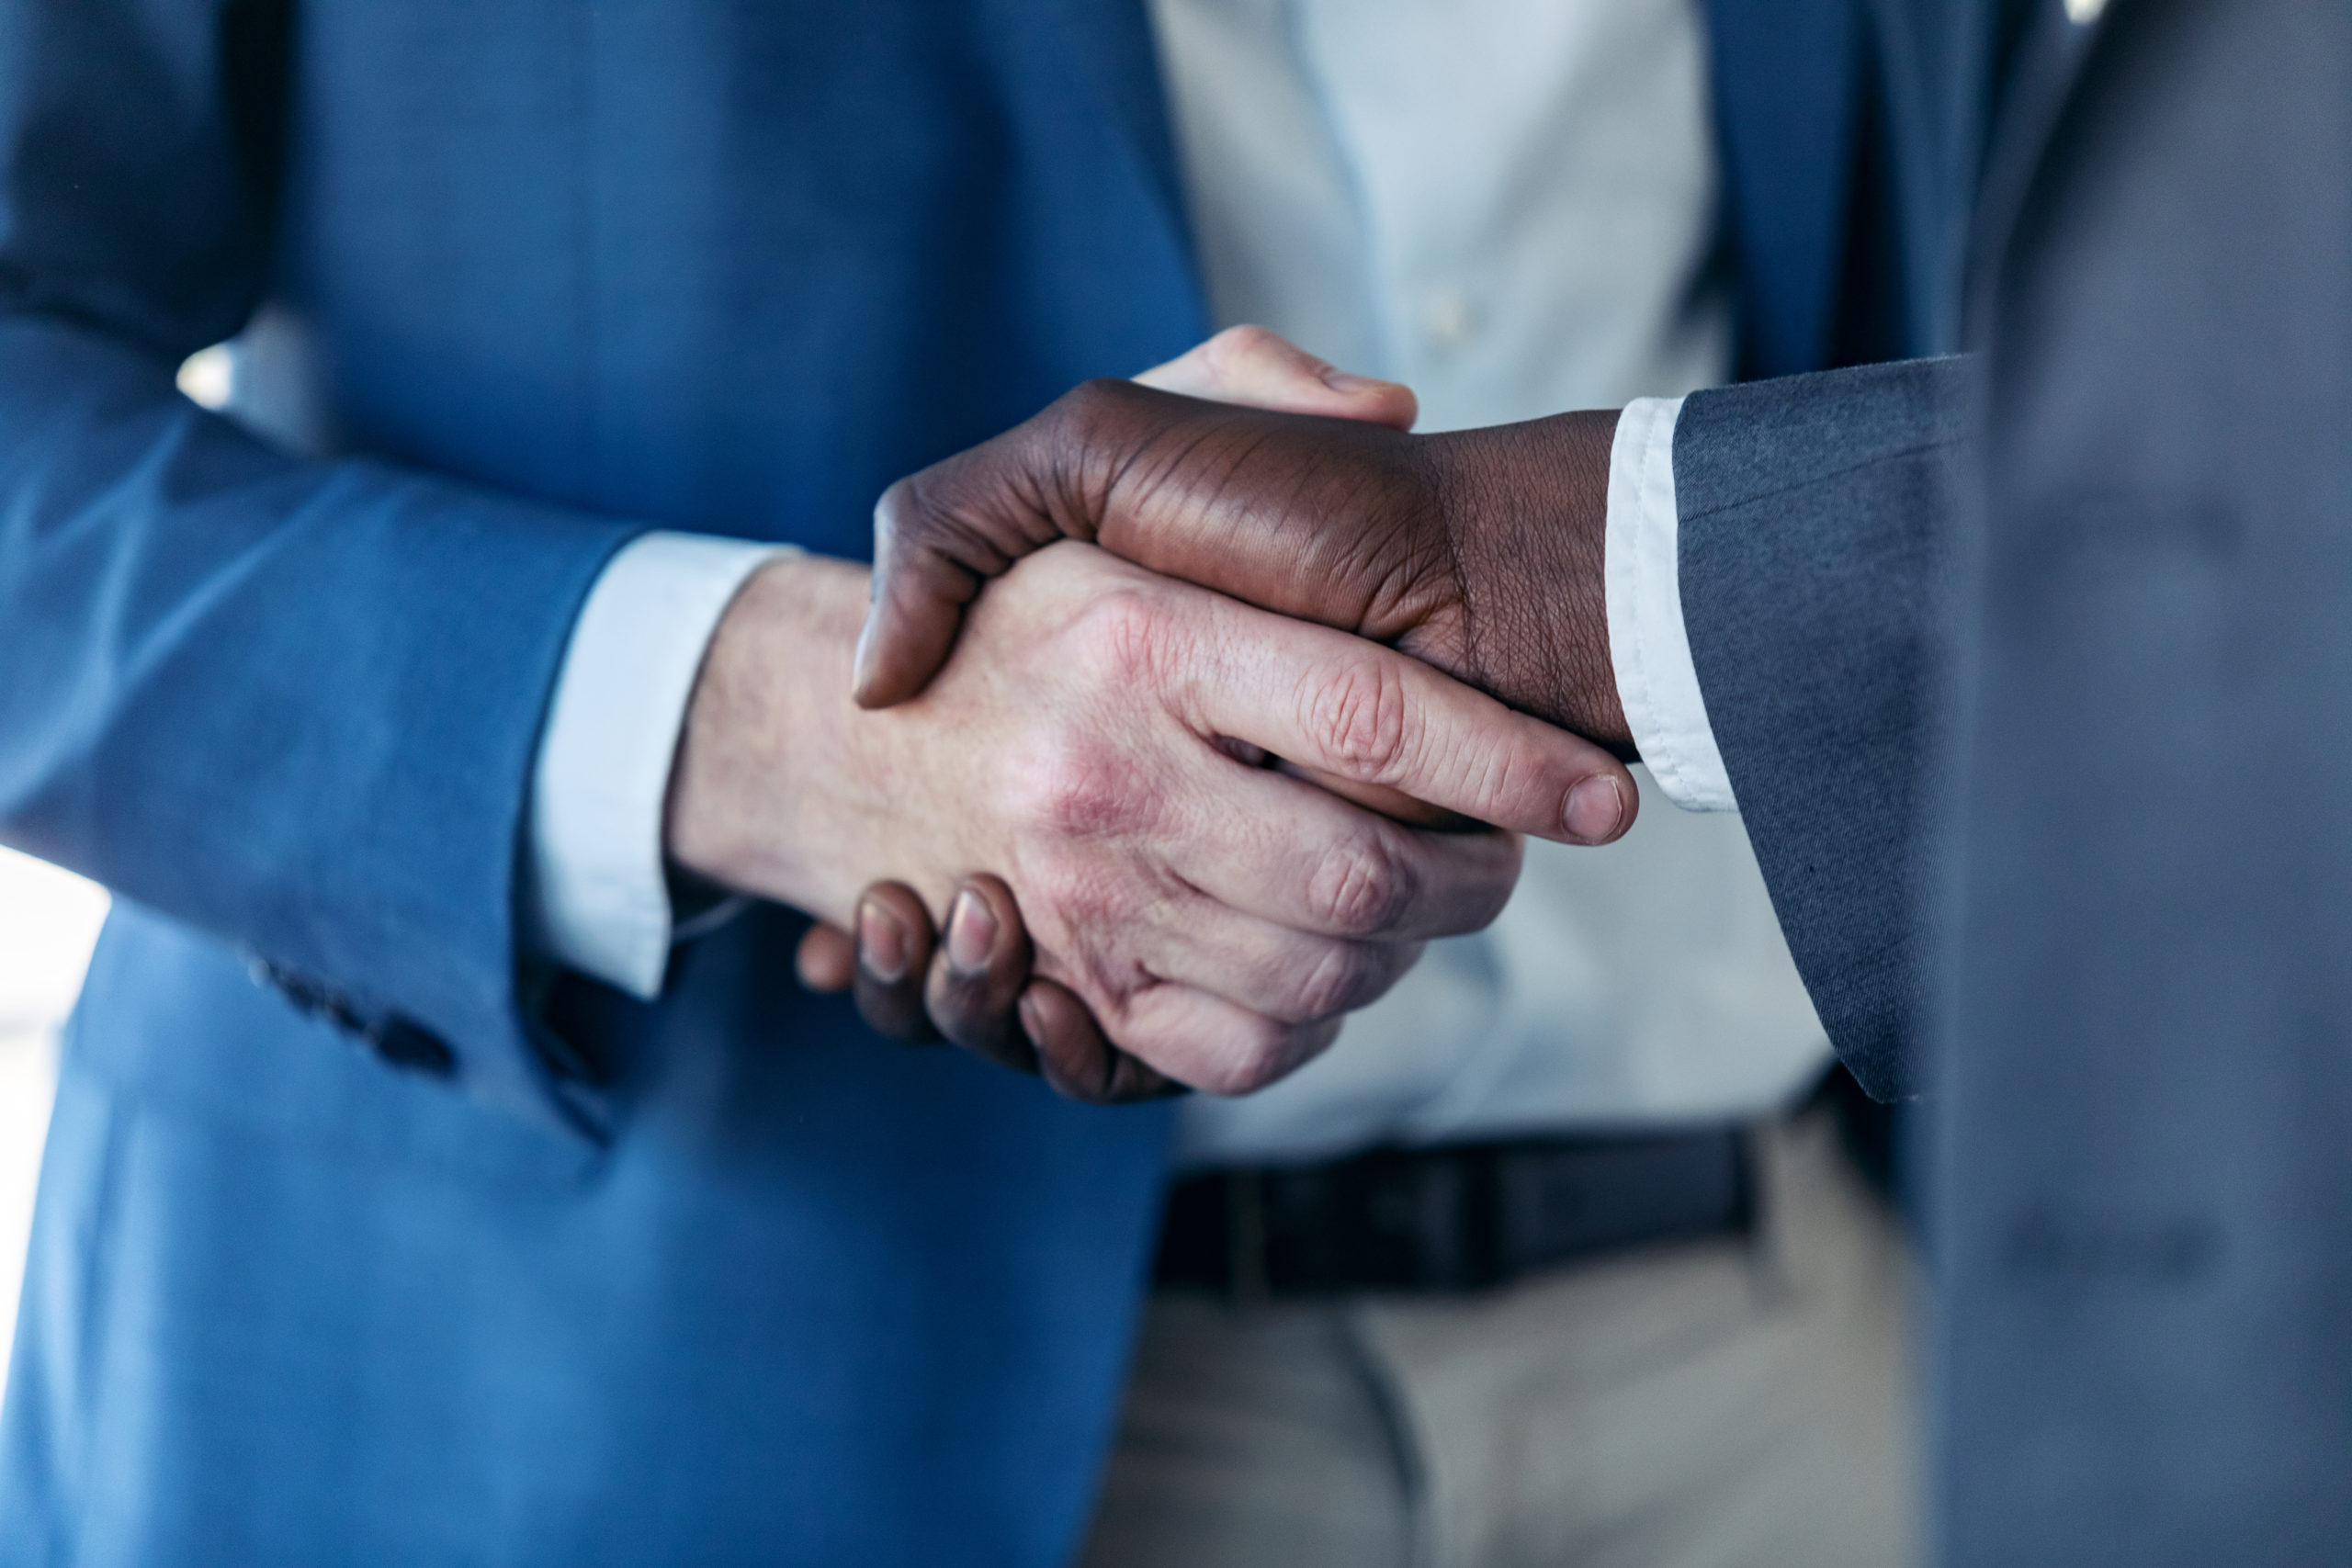 close up view of business partner handshaking proc 4BUCSC7 scaled